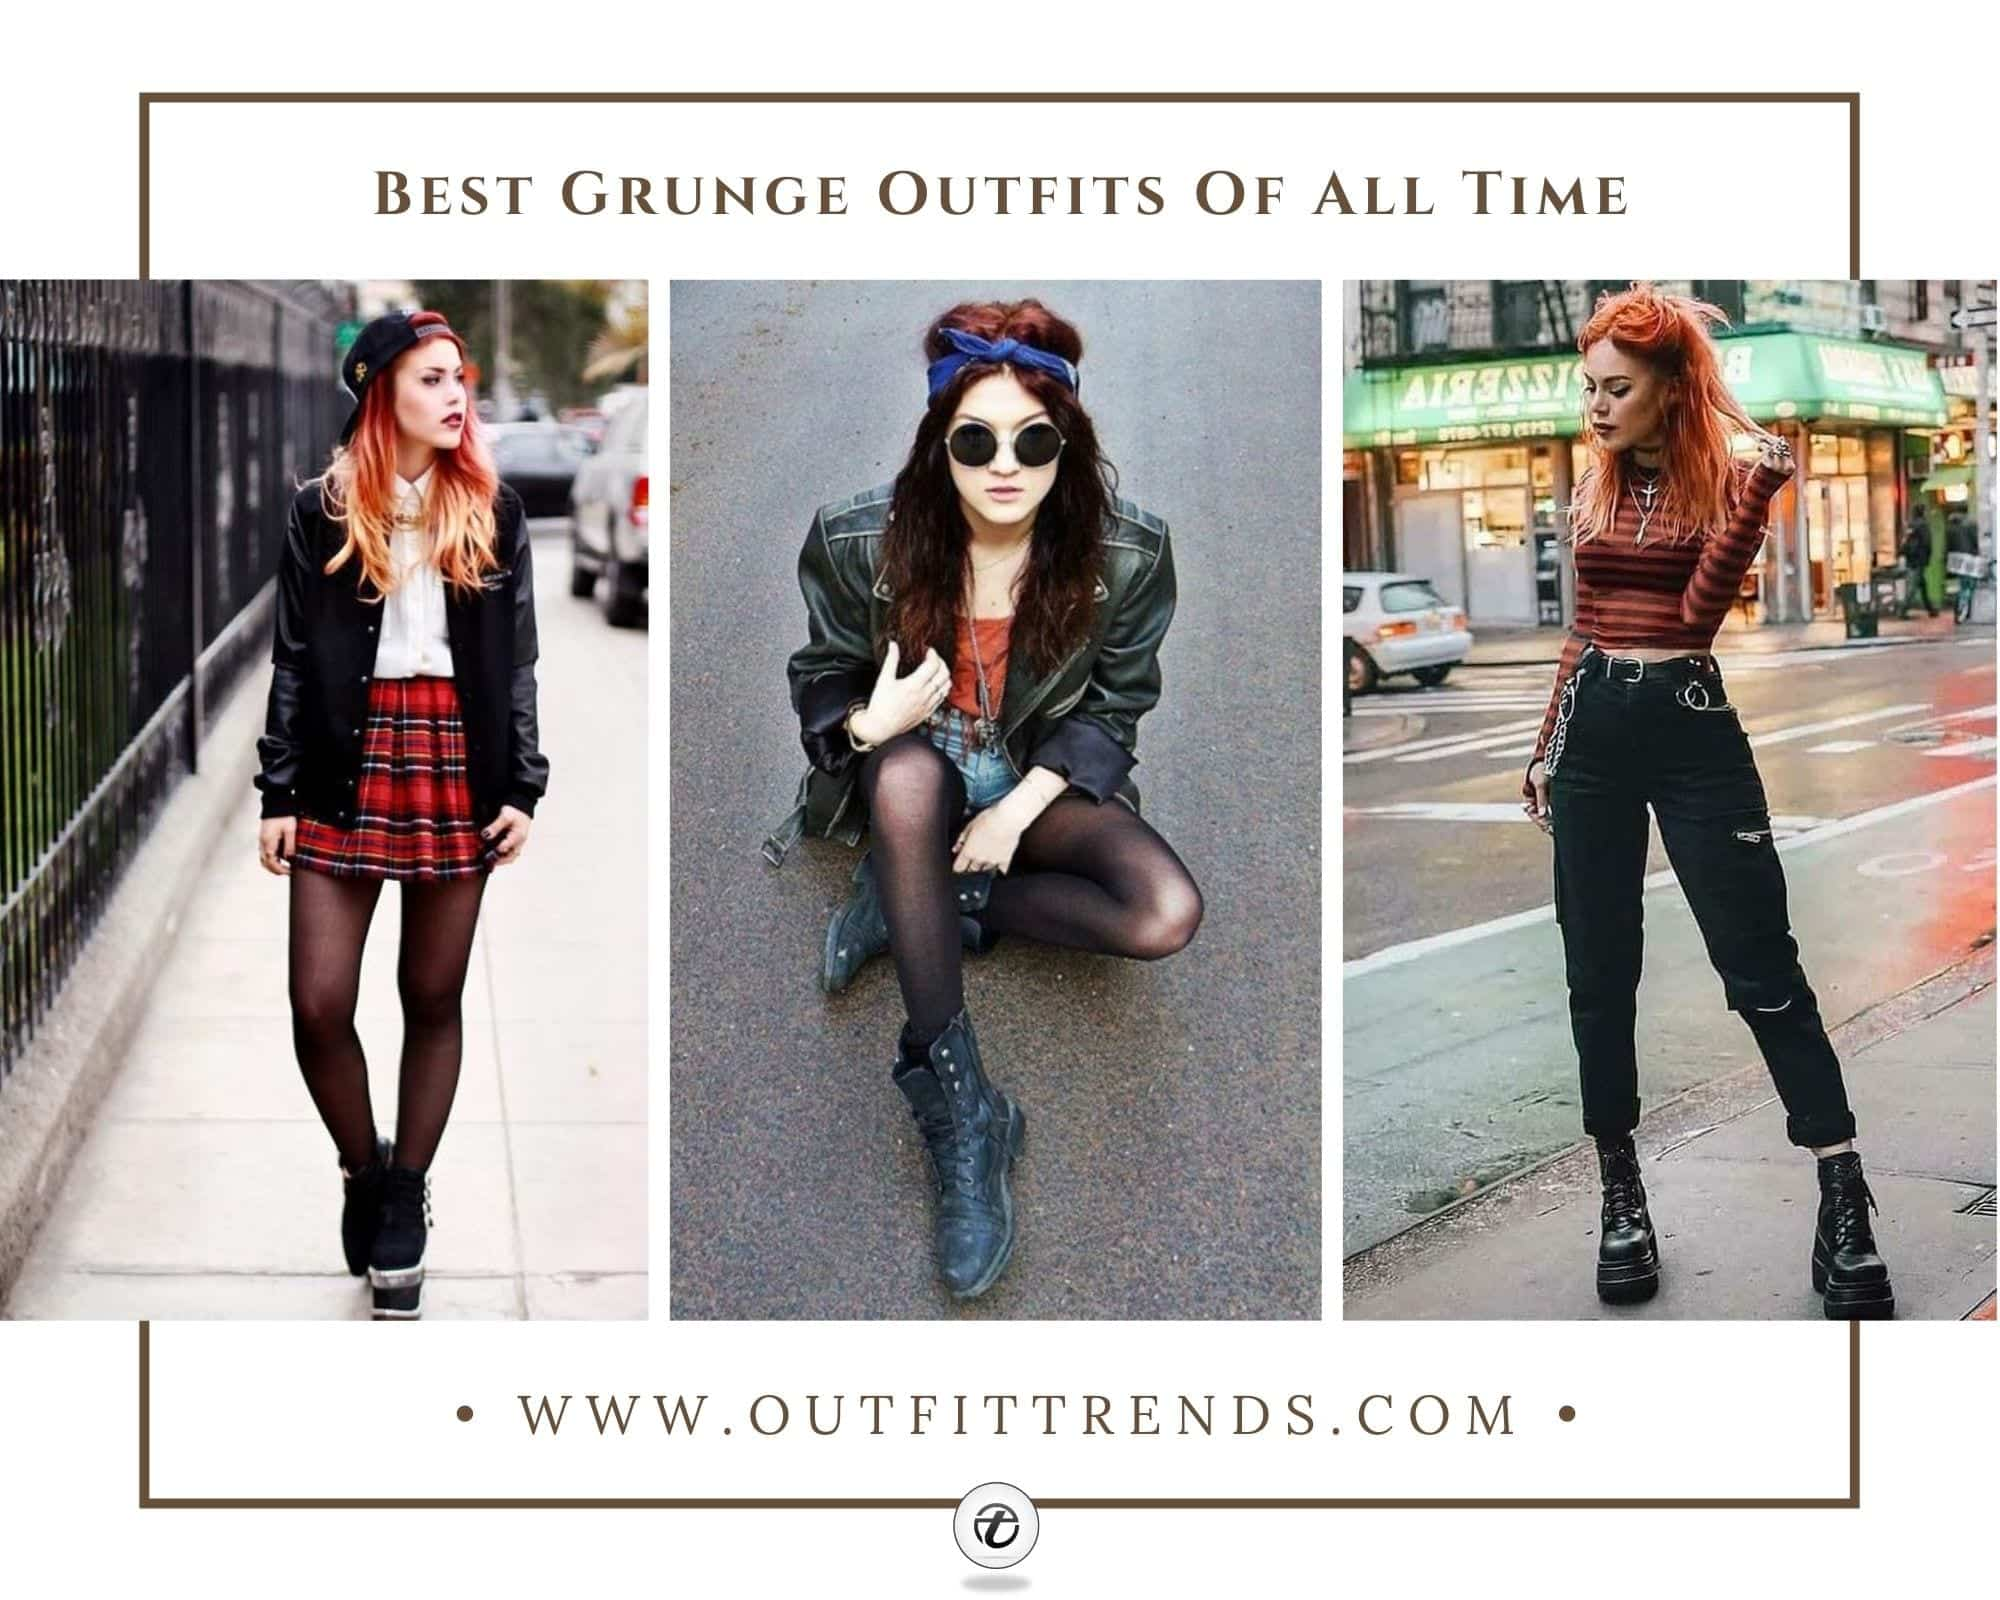 30 Grunge Outfits for Girls To Try How to Dress Grunge